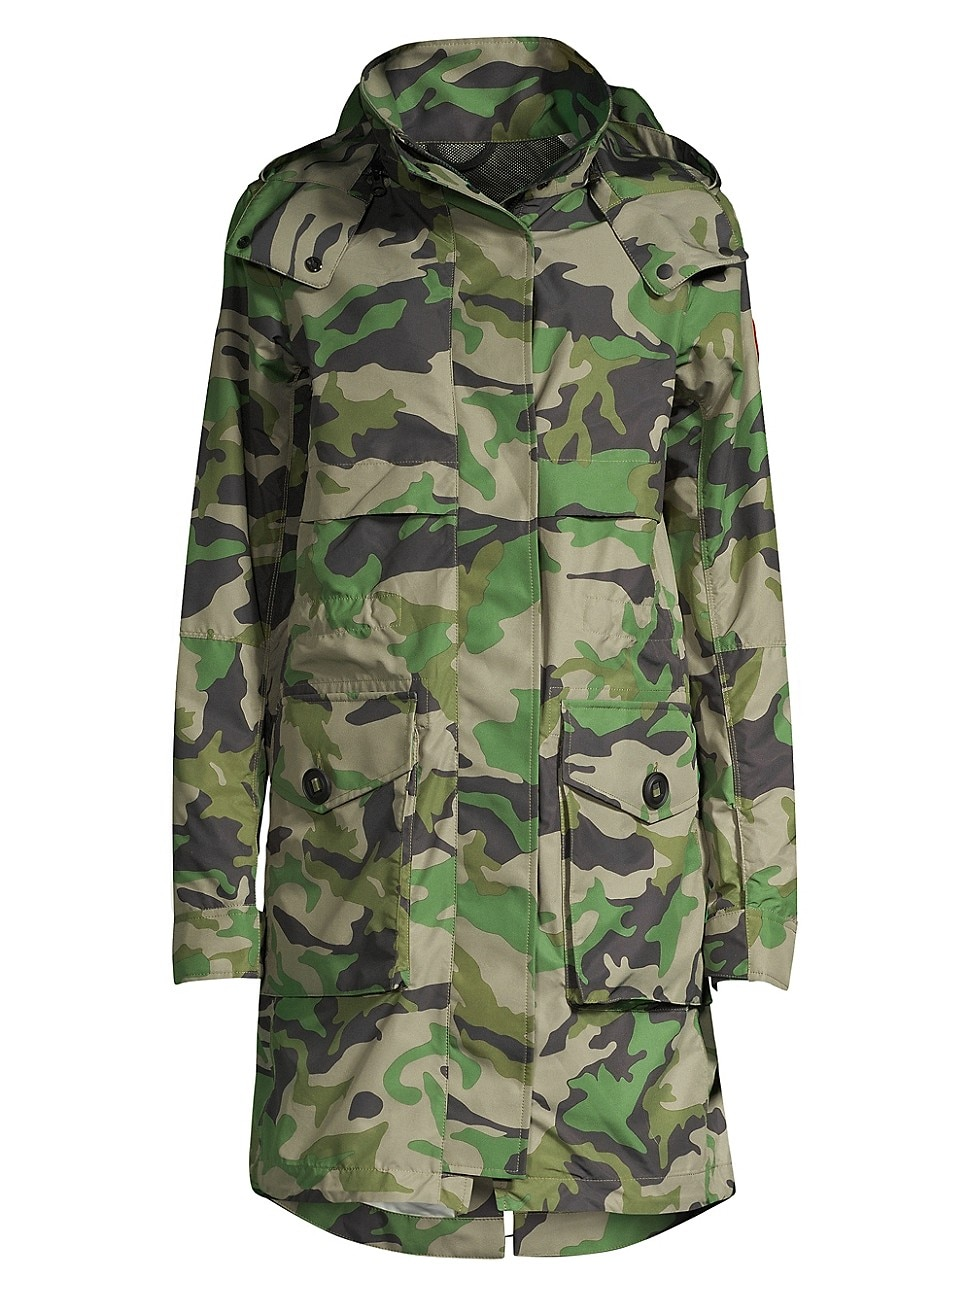 Canada Goose 'cavalry' Detachable Hood Camouflage Print Windproof Trench Coat In Cavalry Trench Camo Print